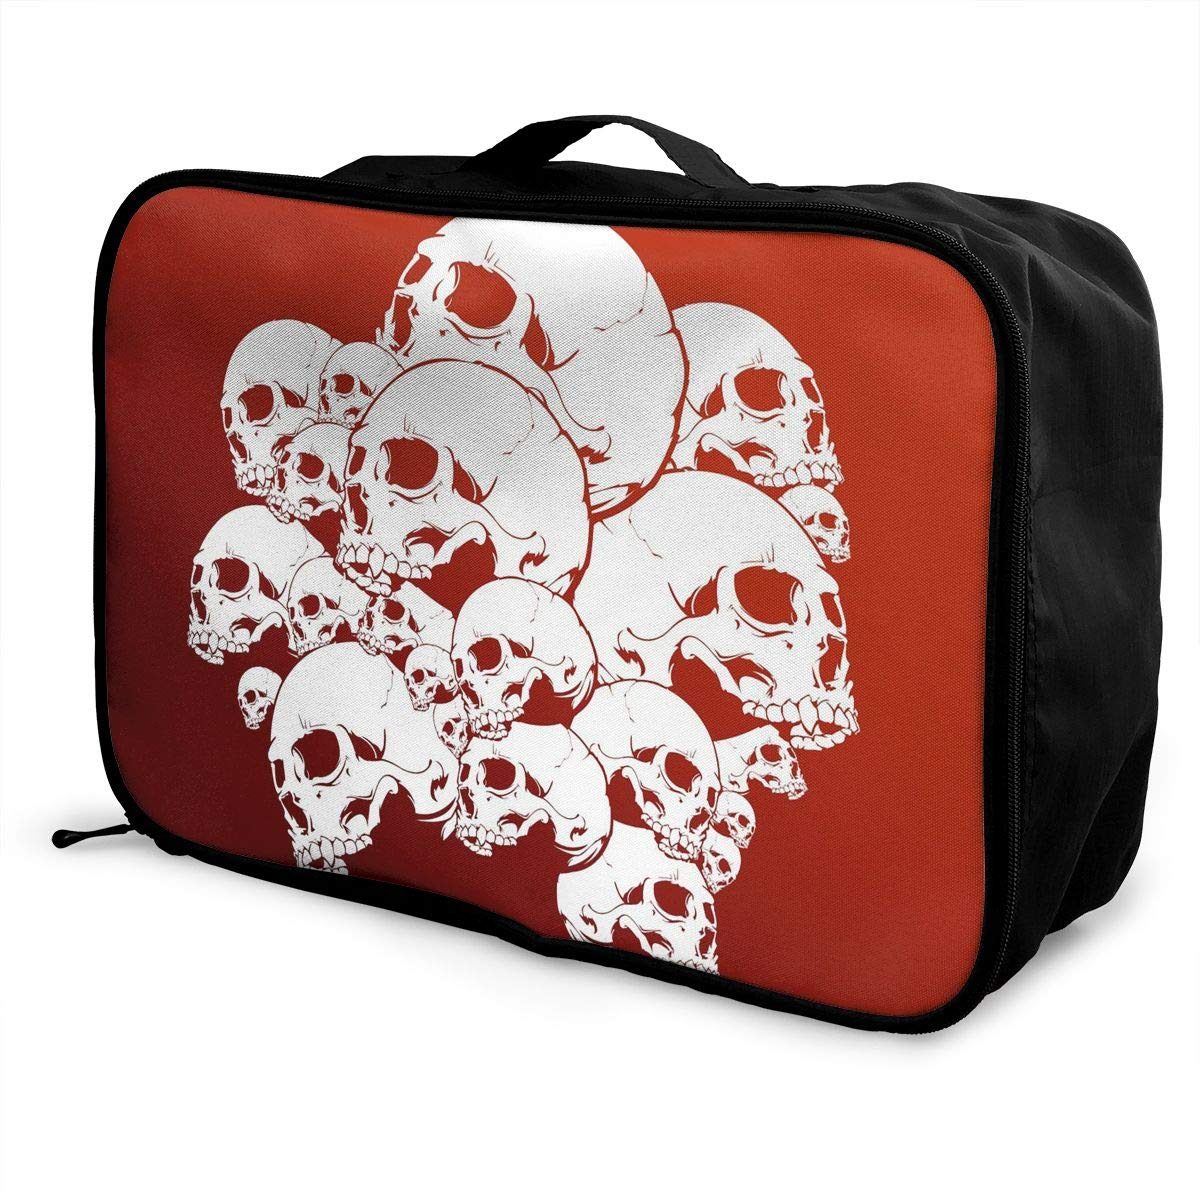 Travel Luggage Duffle Bag Lightweight Portable Handbag Skull Pattern Large Capacity Waterproof Foldable Storage Tote